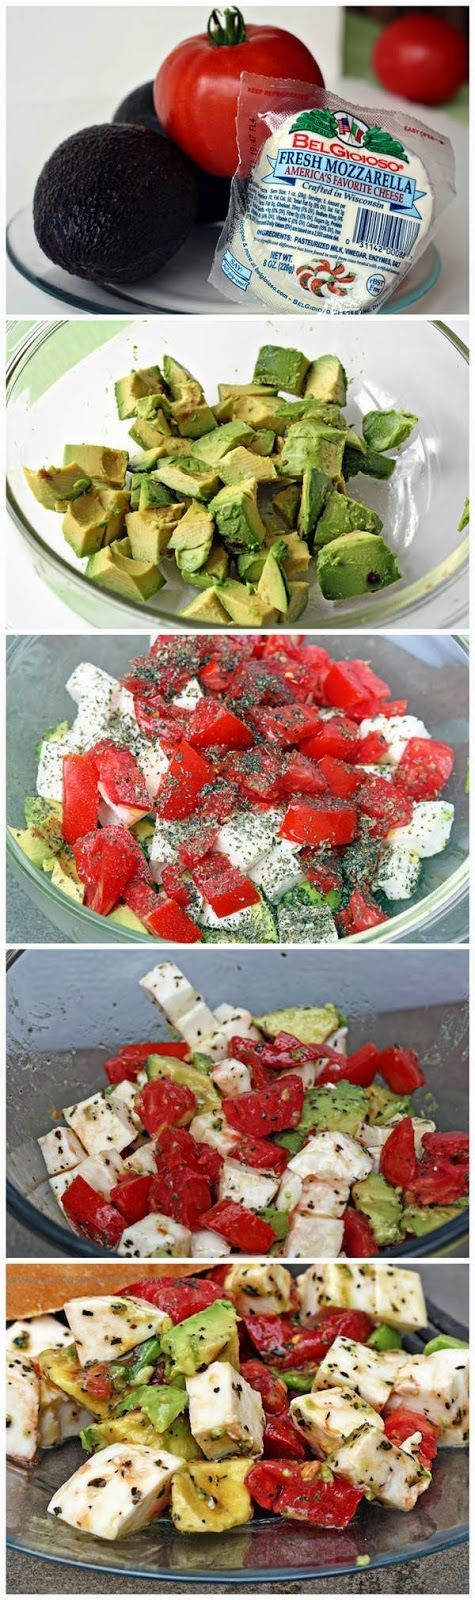 Mozzarella Salad Avocado Tomato Salad #healthy #avocado #salad